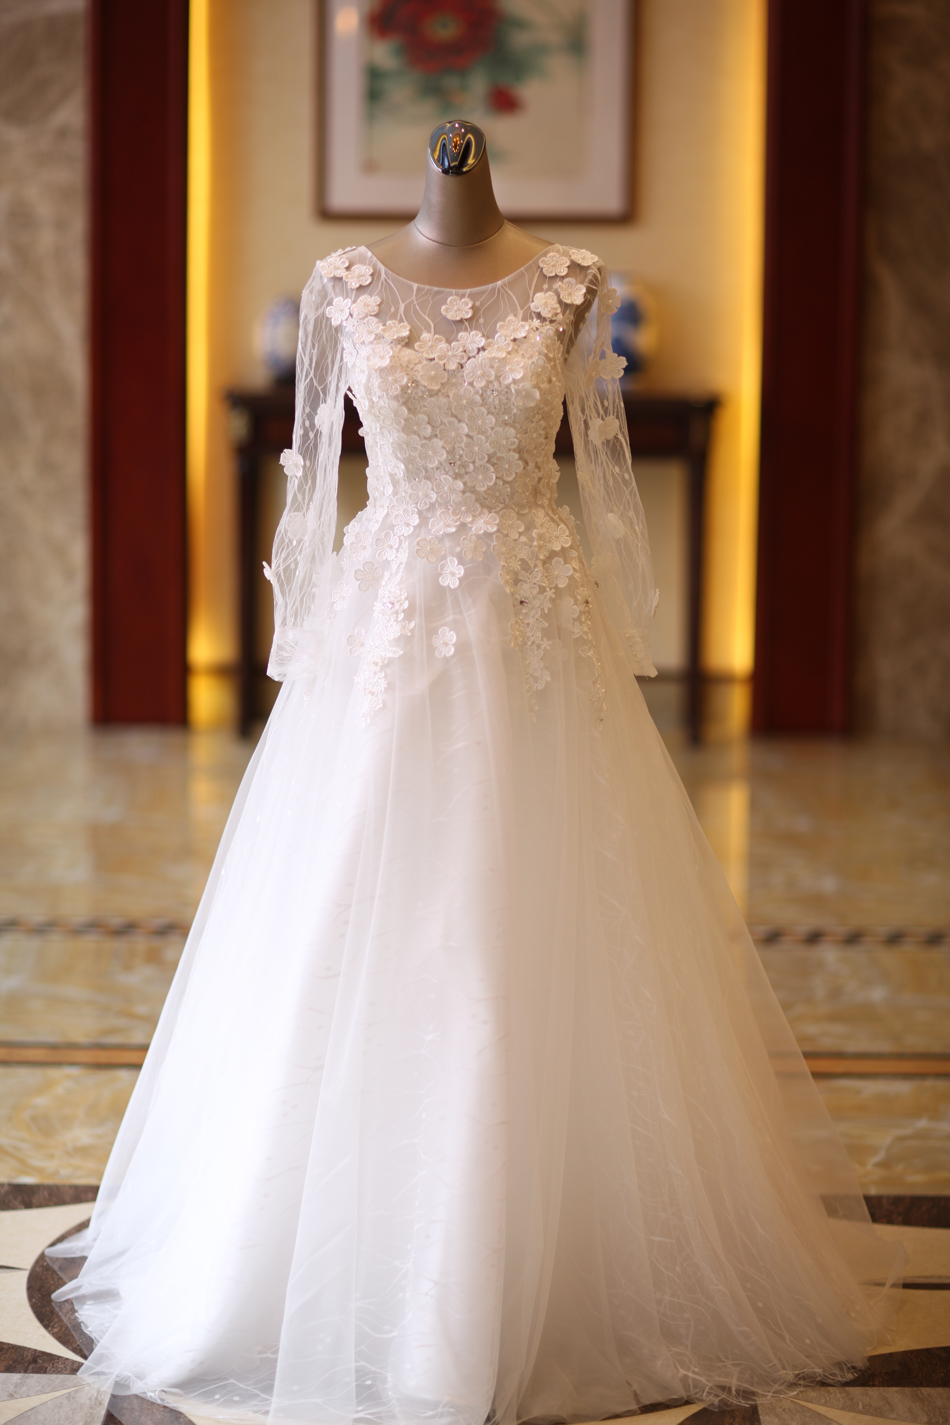 Angel Wedding Dress Marriage Bride Bridal Gown Vestido De Noiva Lace Boat Neck Flower bud silk 2017 6916 18